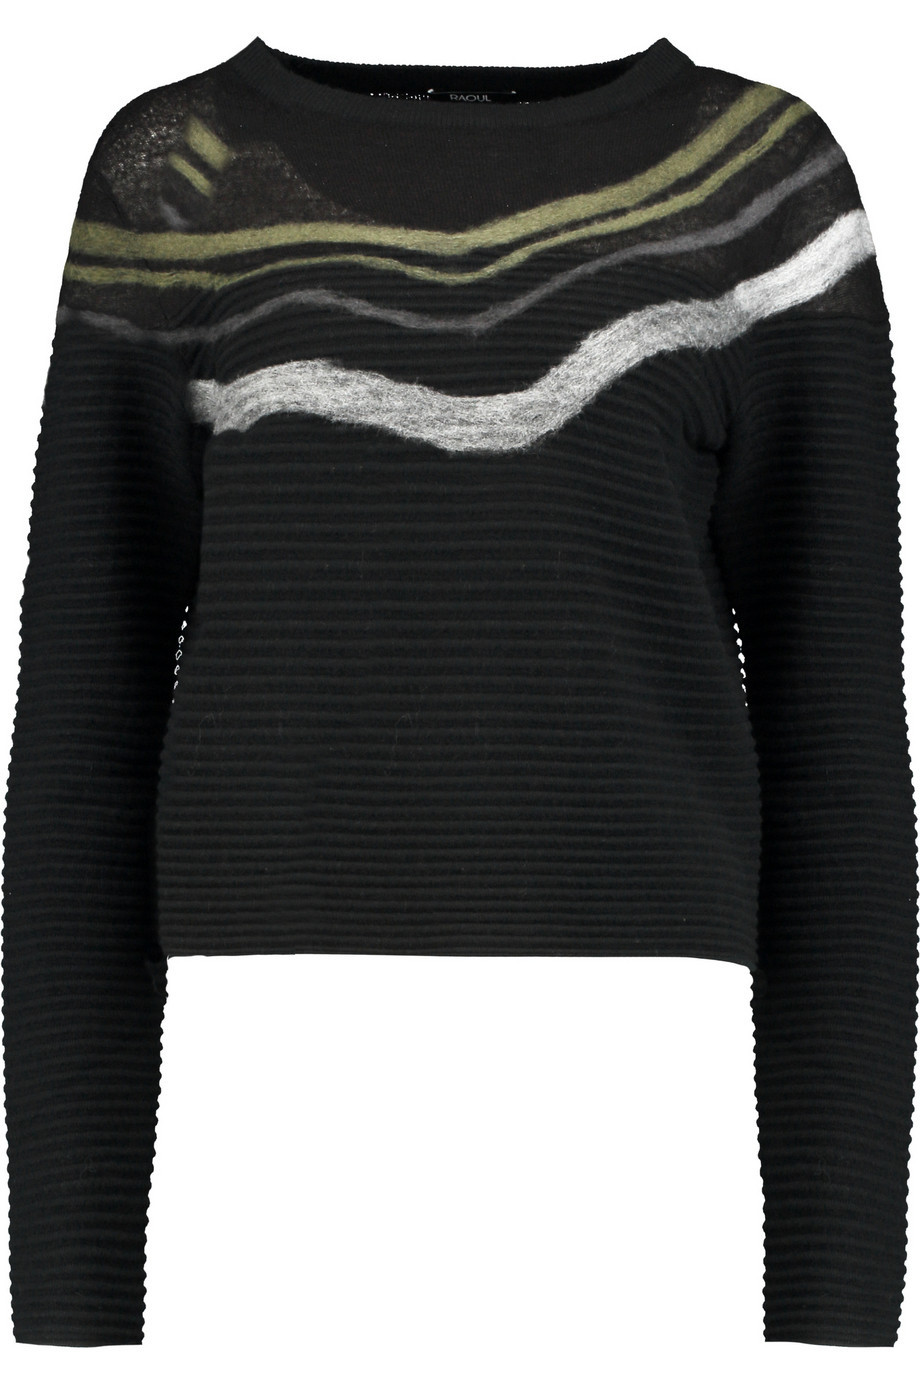 Intarsia Knit Sweater Black - neckline: slash/boat neckline; pattern: horizontal stripes; style: standard; secondary colour: khaki; predominant colour: black; occasions: casual; length: standard; fibres: nylon - mix; fit: standard fit; sleeve length: long sleeve; sleeve style: standard; texture group: knits/crochet; pattern type: knitted - fine stitch; pattern size: light/subtle; season: a/w 2015